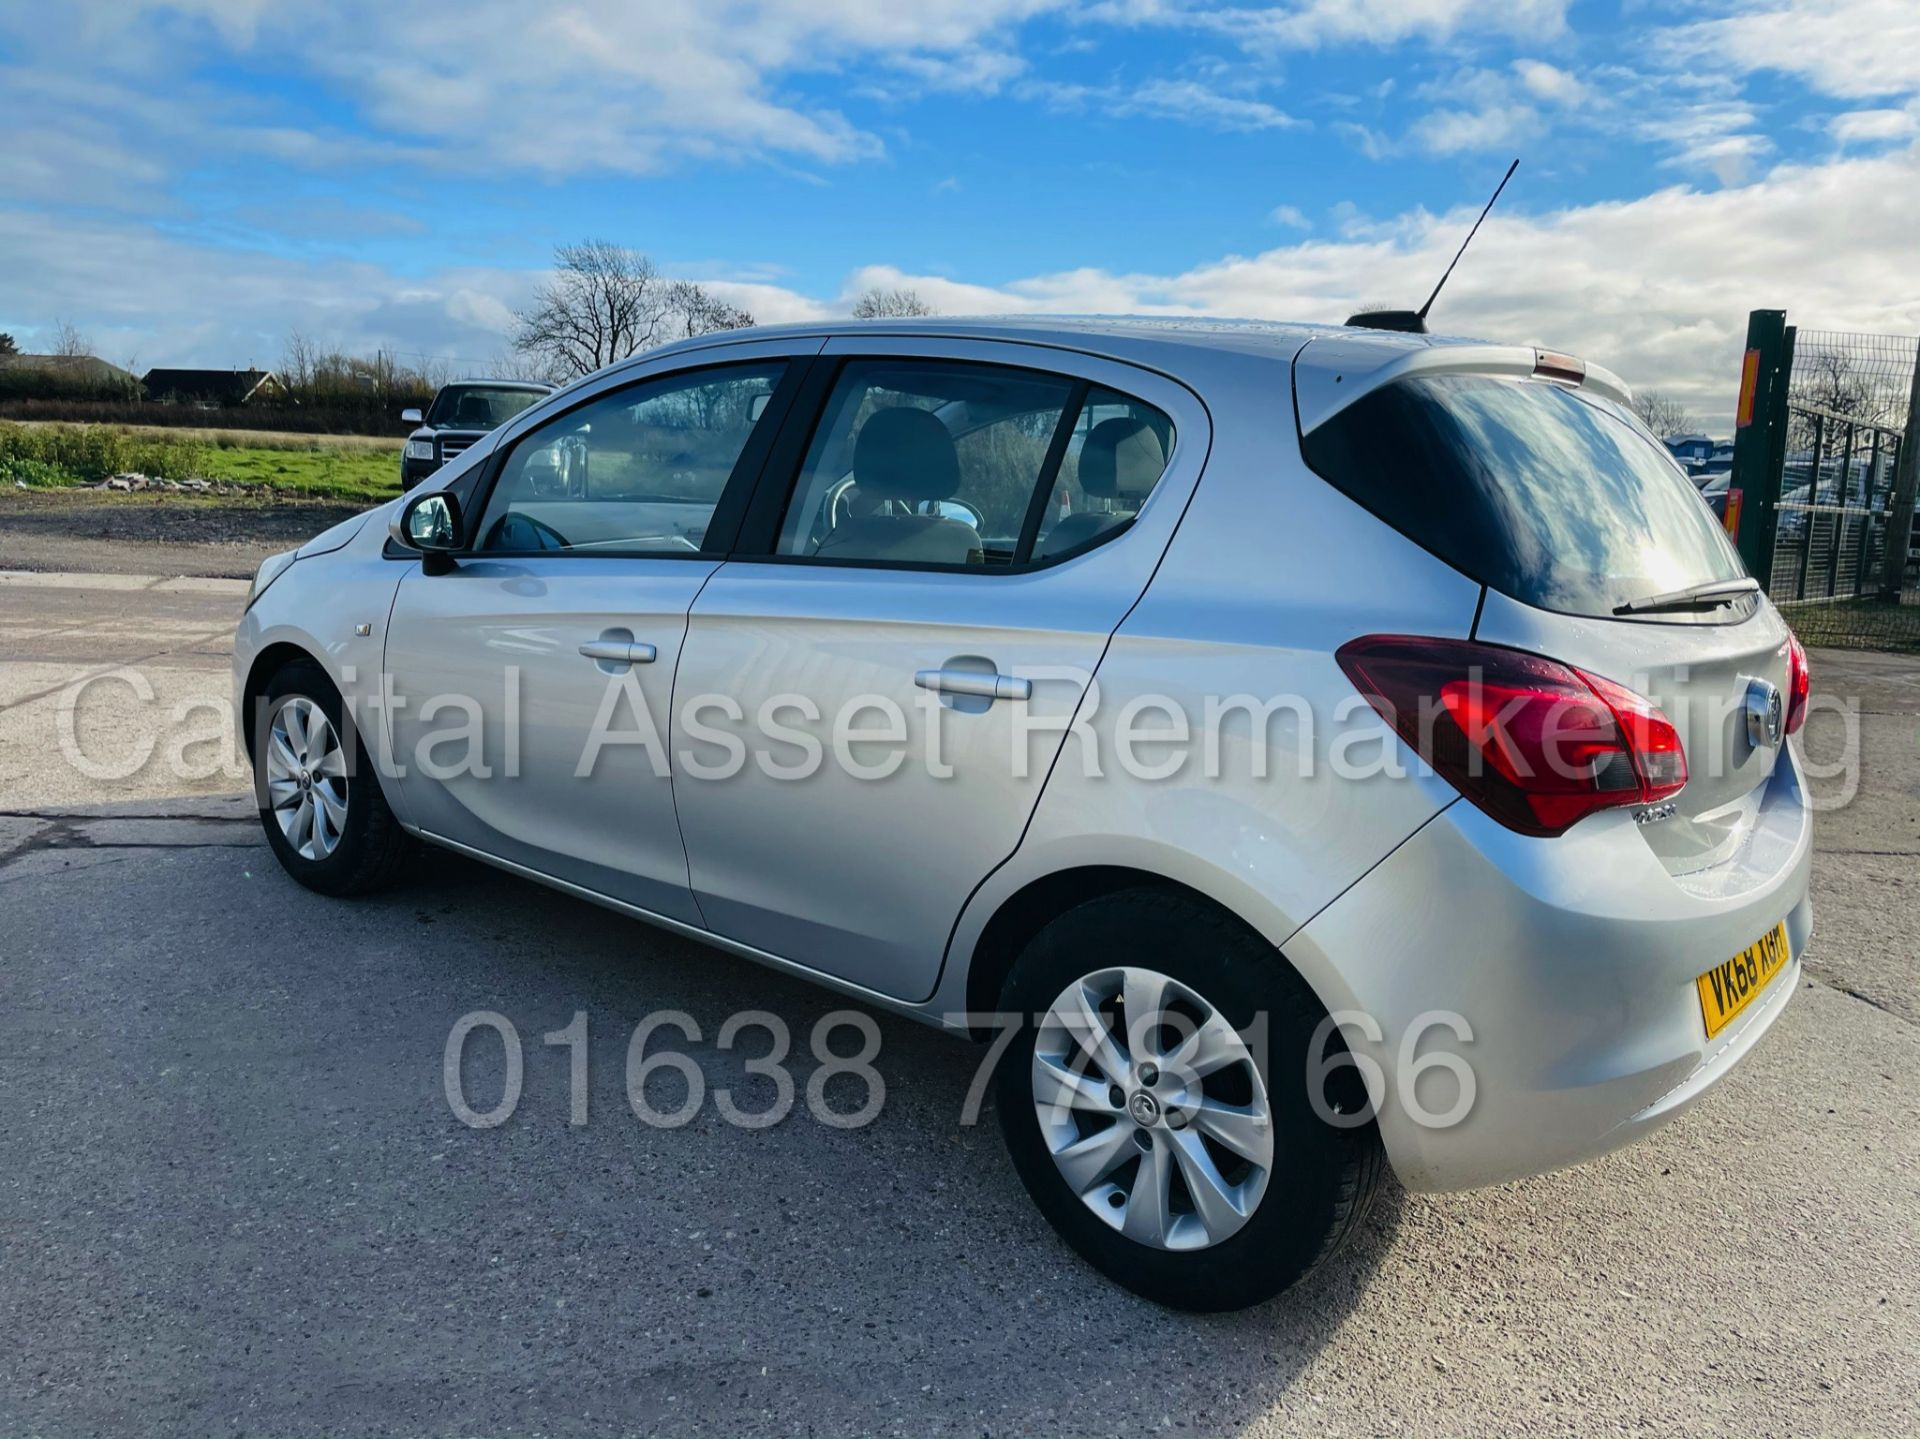 On Sale VAUXHALL CORSA *DESIGN EDITION* 5 DOOR HATCHBACK (2019 - NEW MODEL) 1.4 PETROL - (1 OWNER) - Image 9 of 42